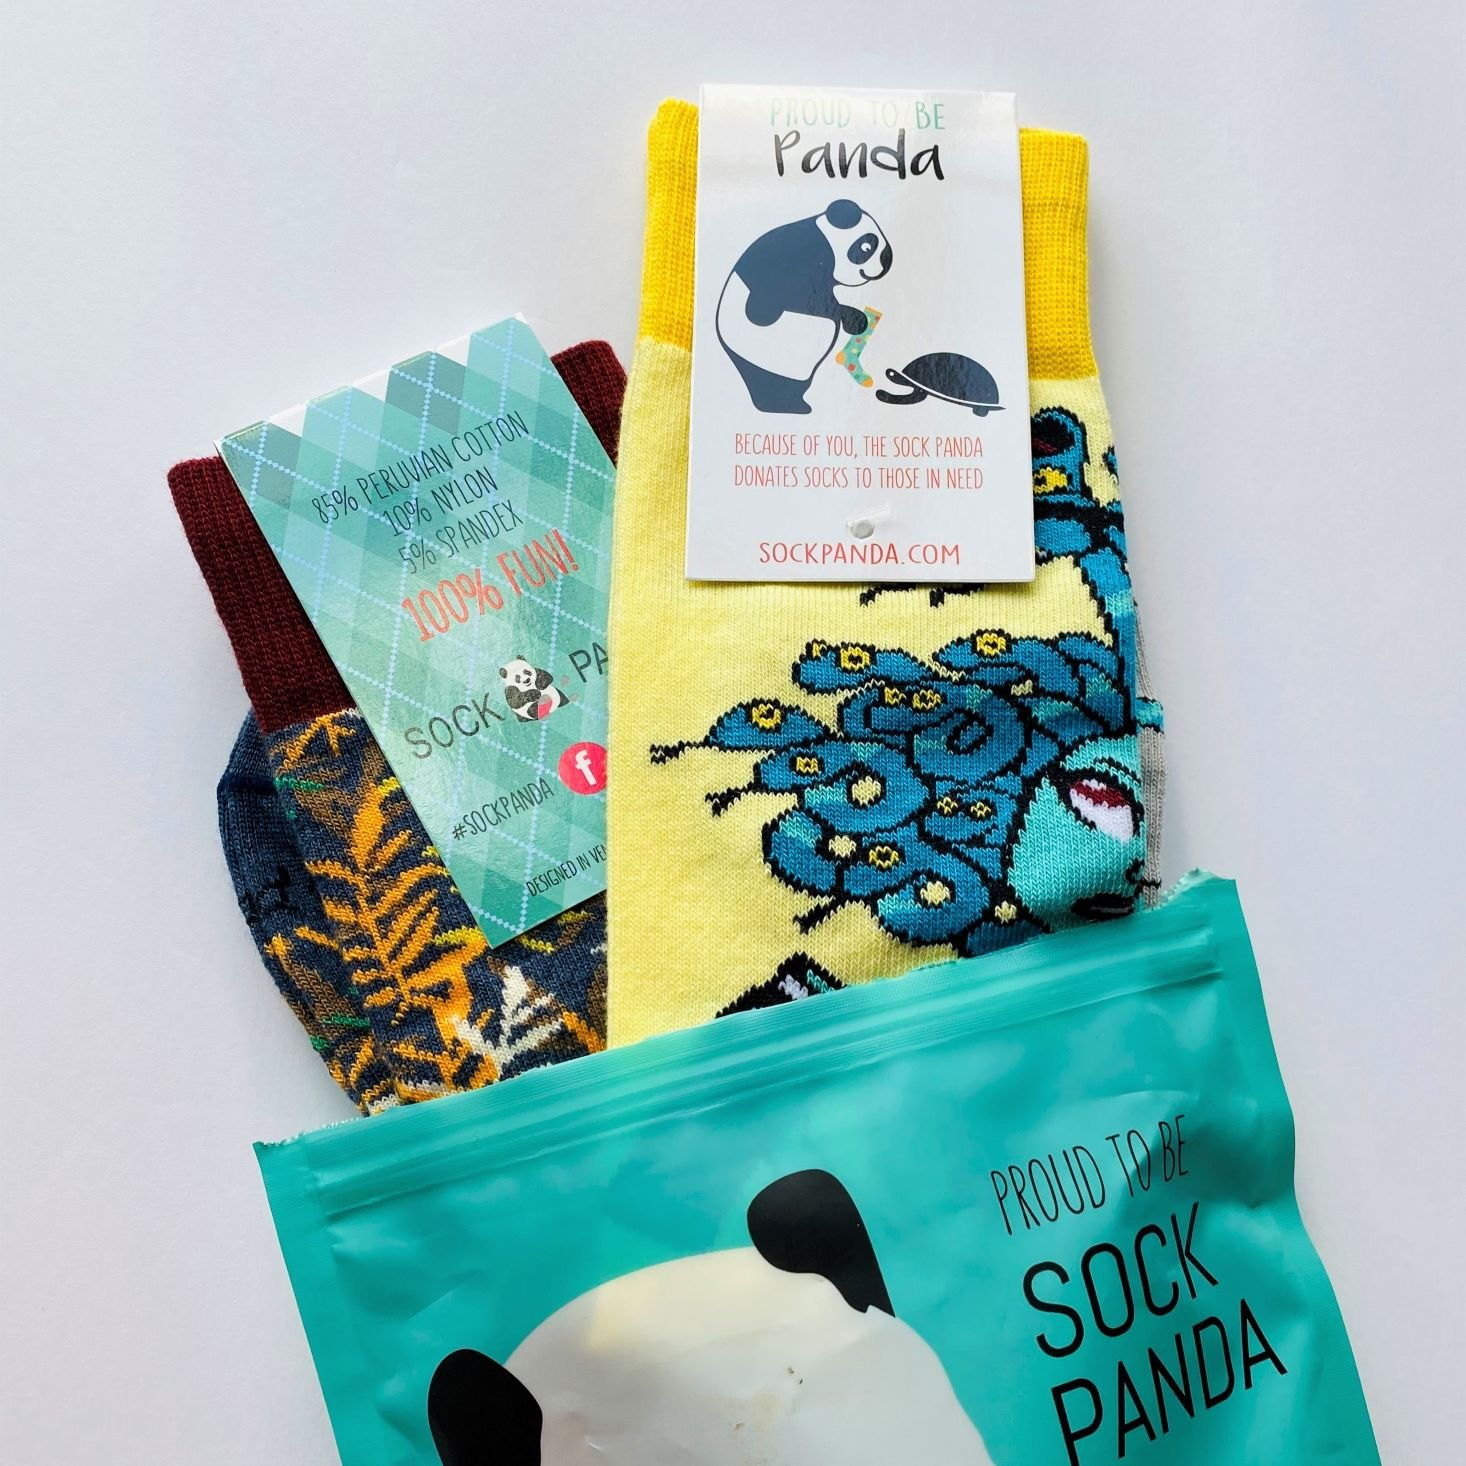 Sock Panda Cyber Monday Deal – 30% Off Site Wide!